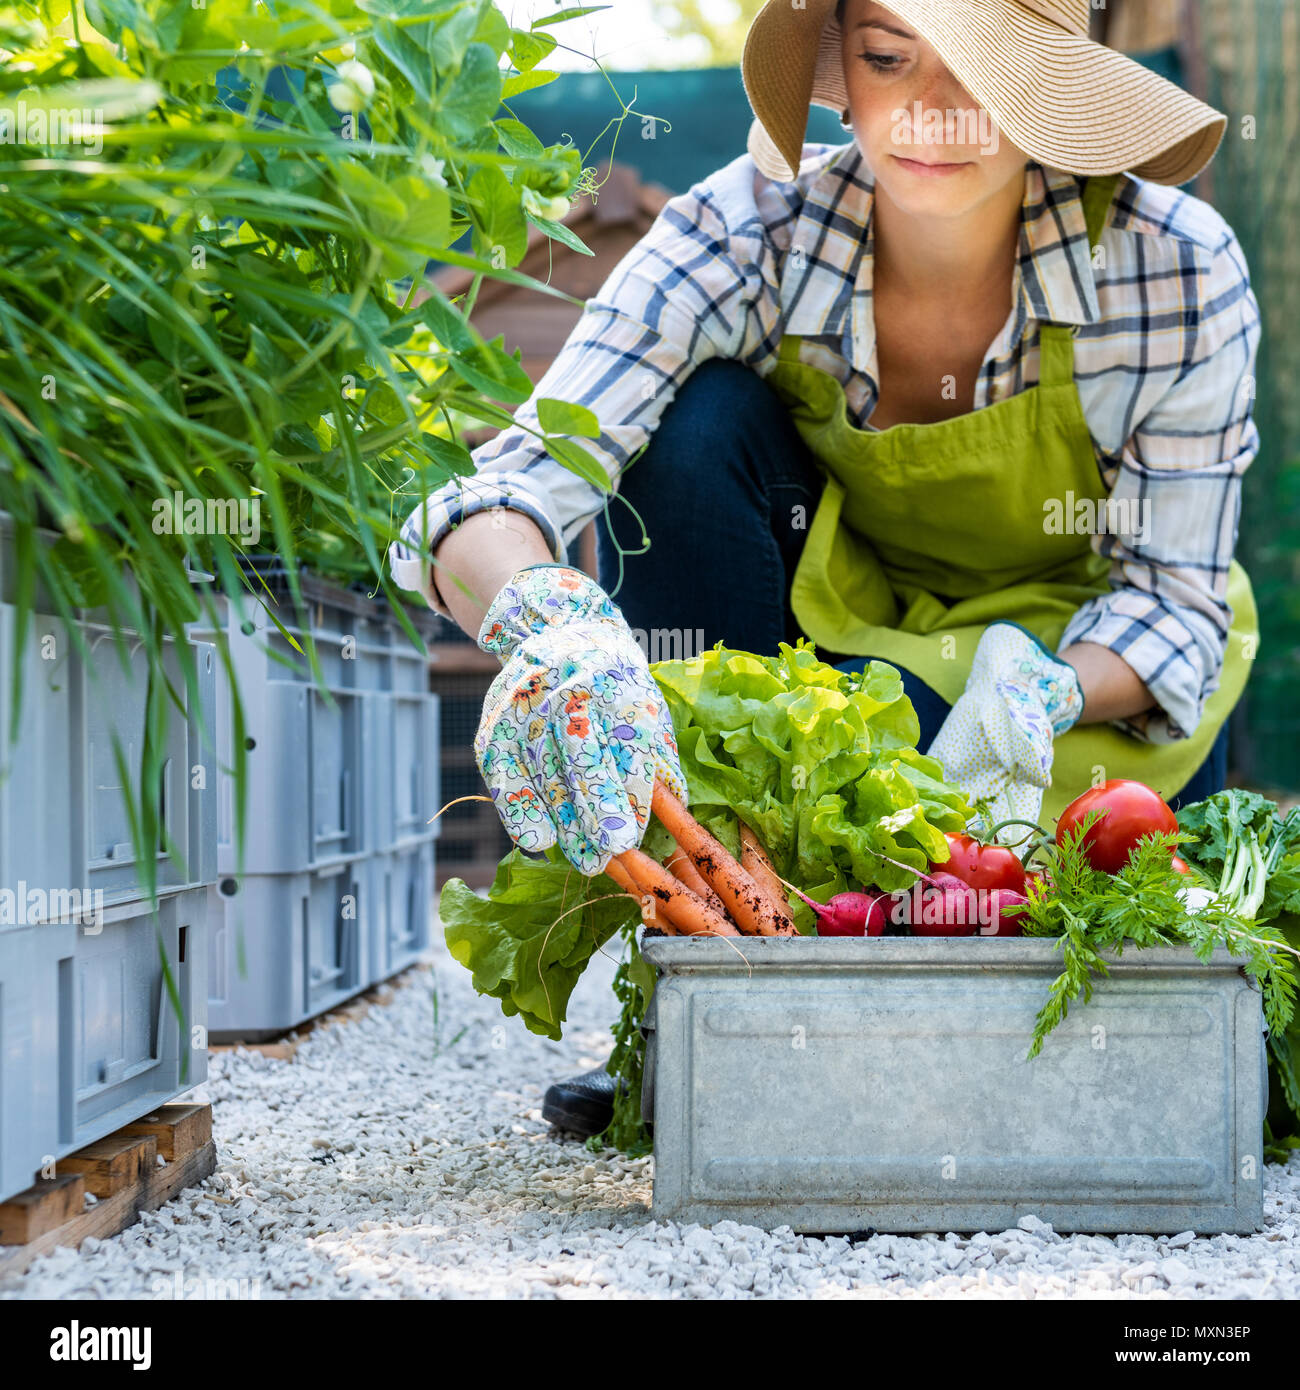 Beautiful young female farmer with freshly harvested vegetables in her garden. Homegrown bio produce concept. Small business owner. Sustainable farm. - Stock Image